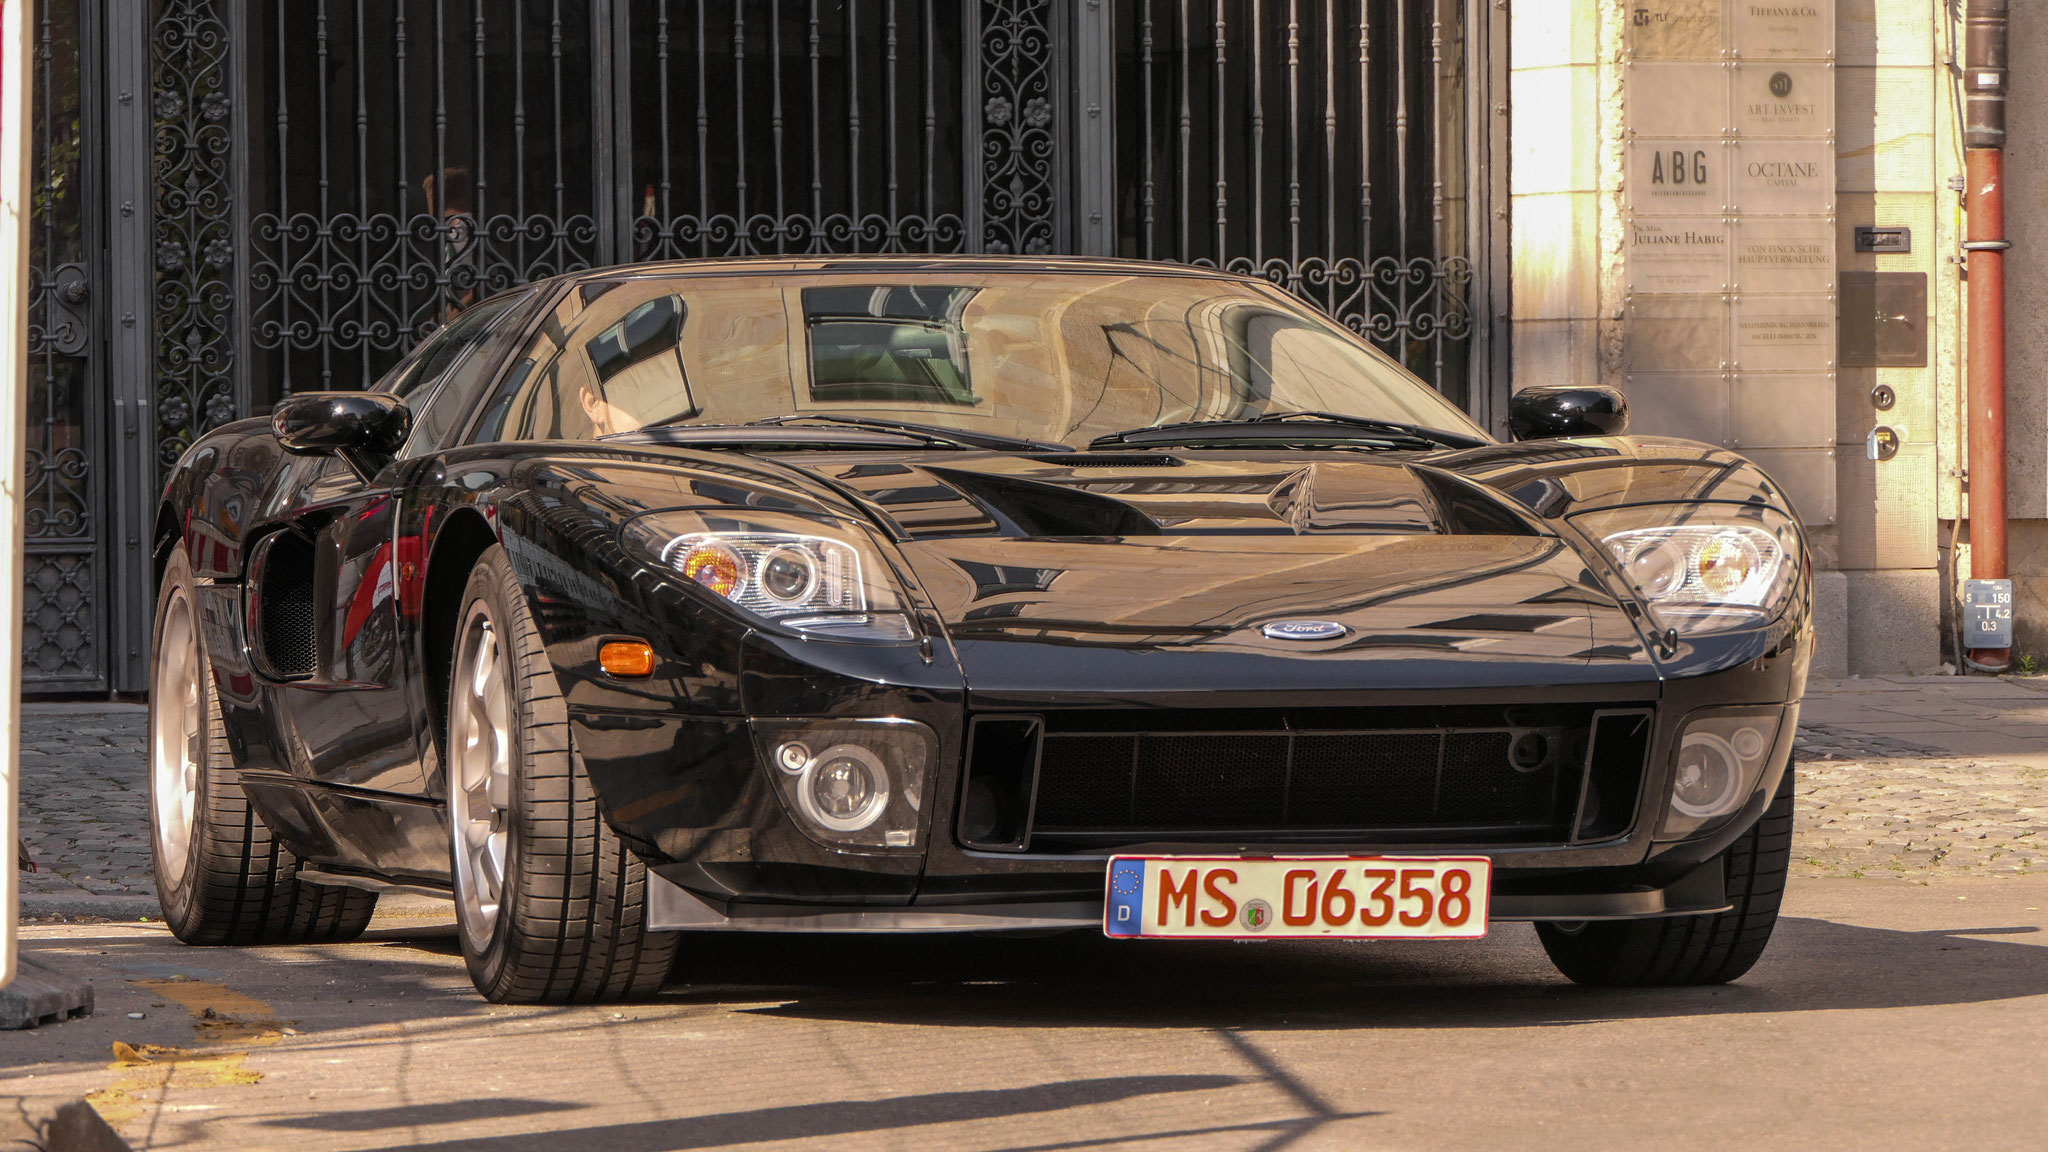 Ford GT - MS-06358